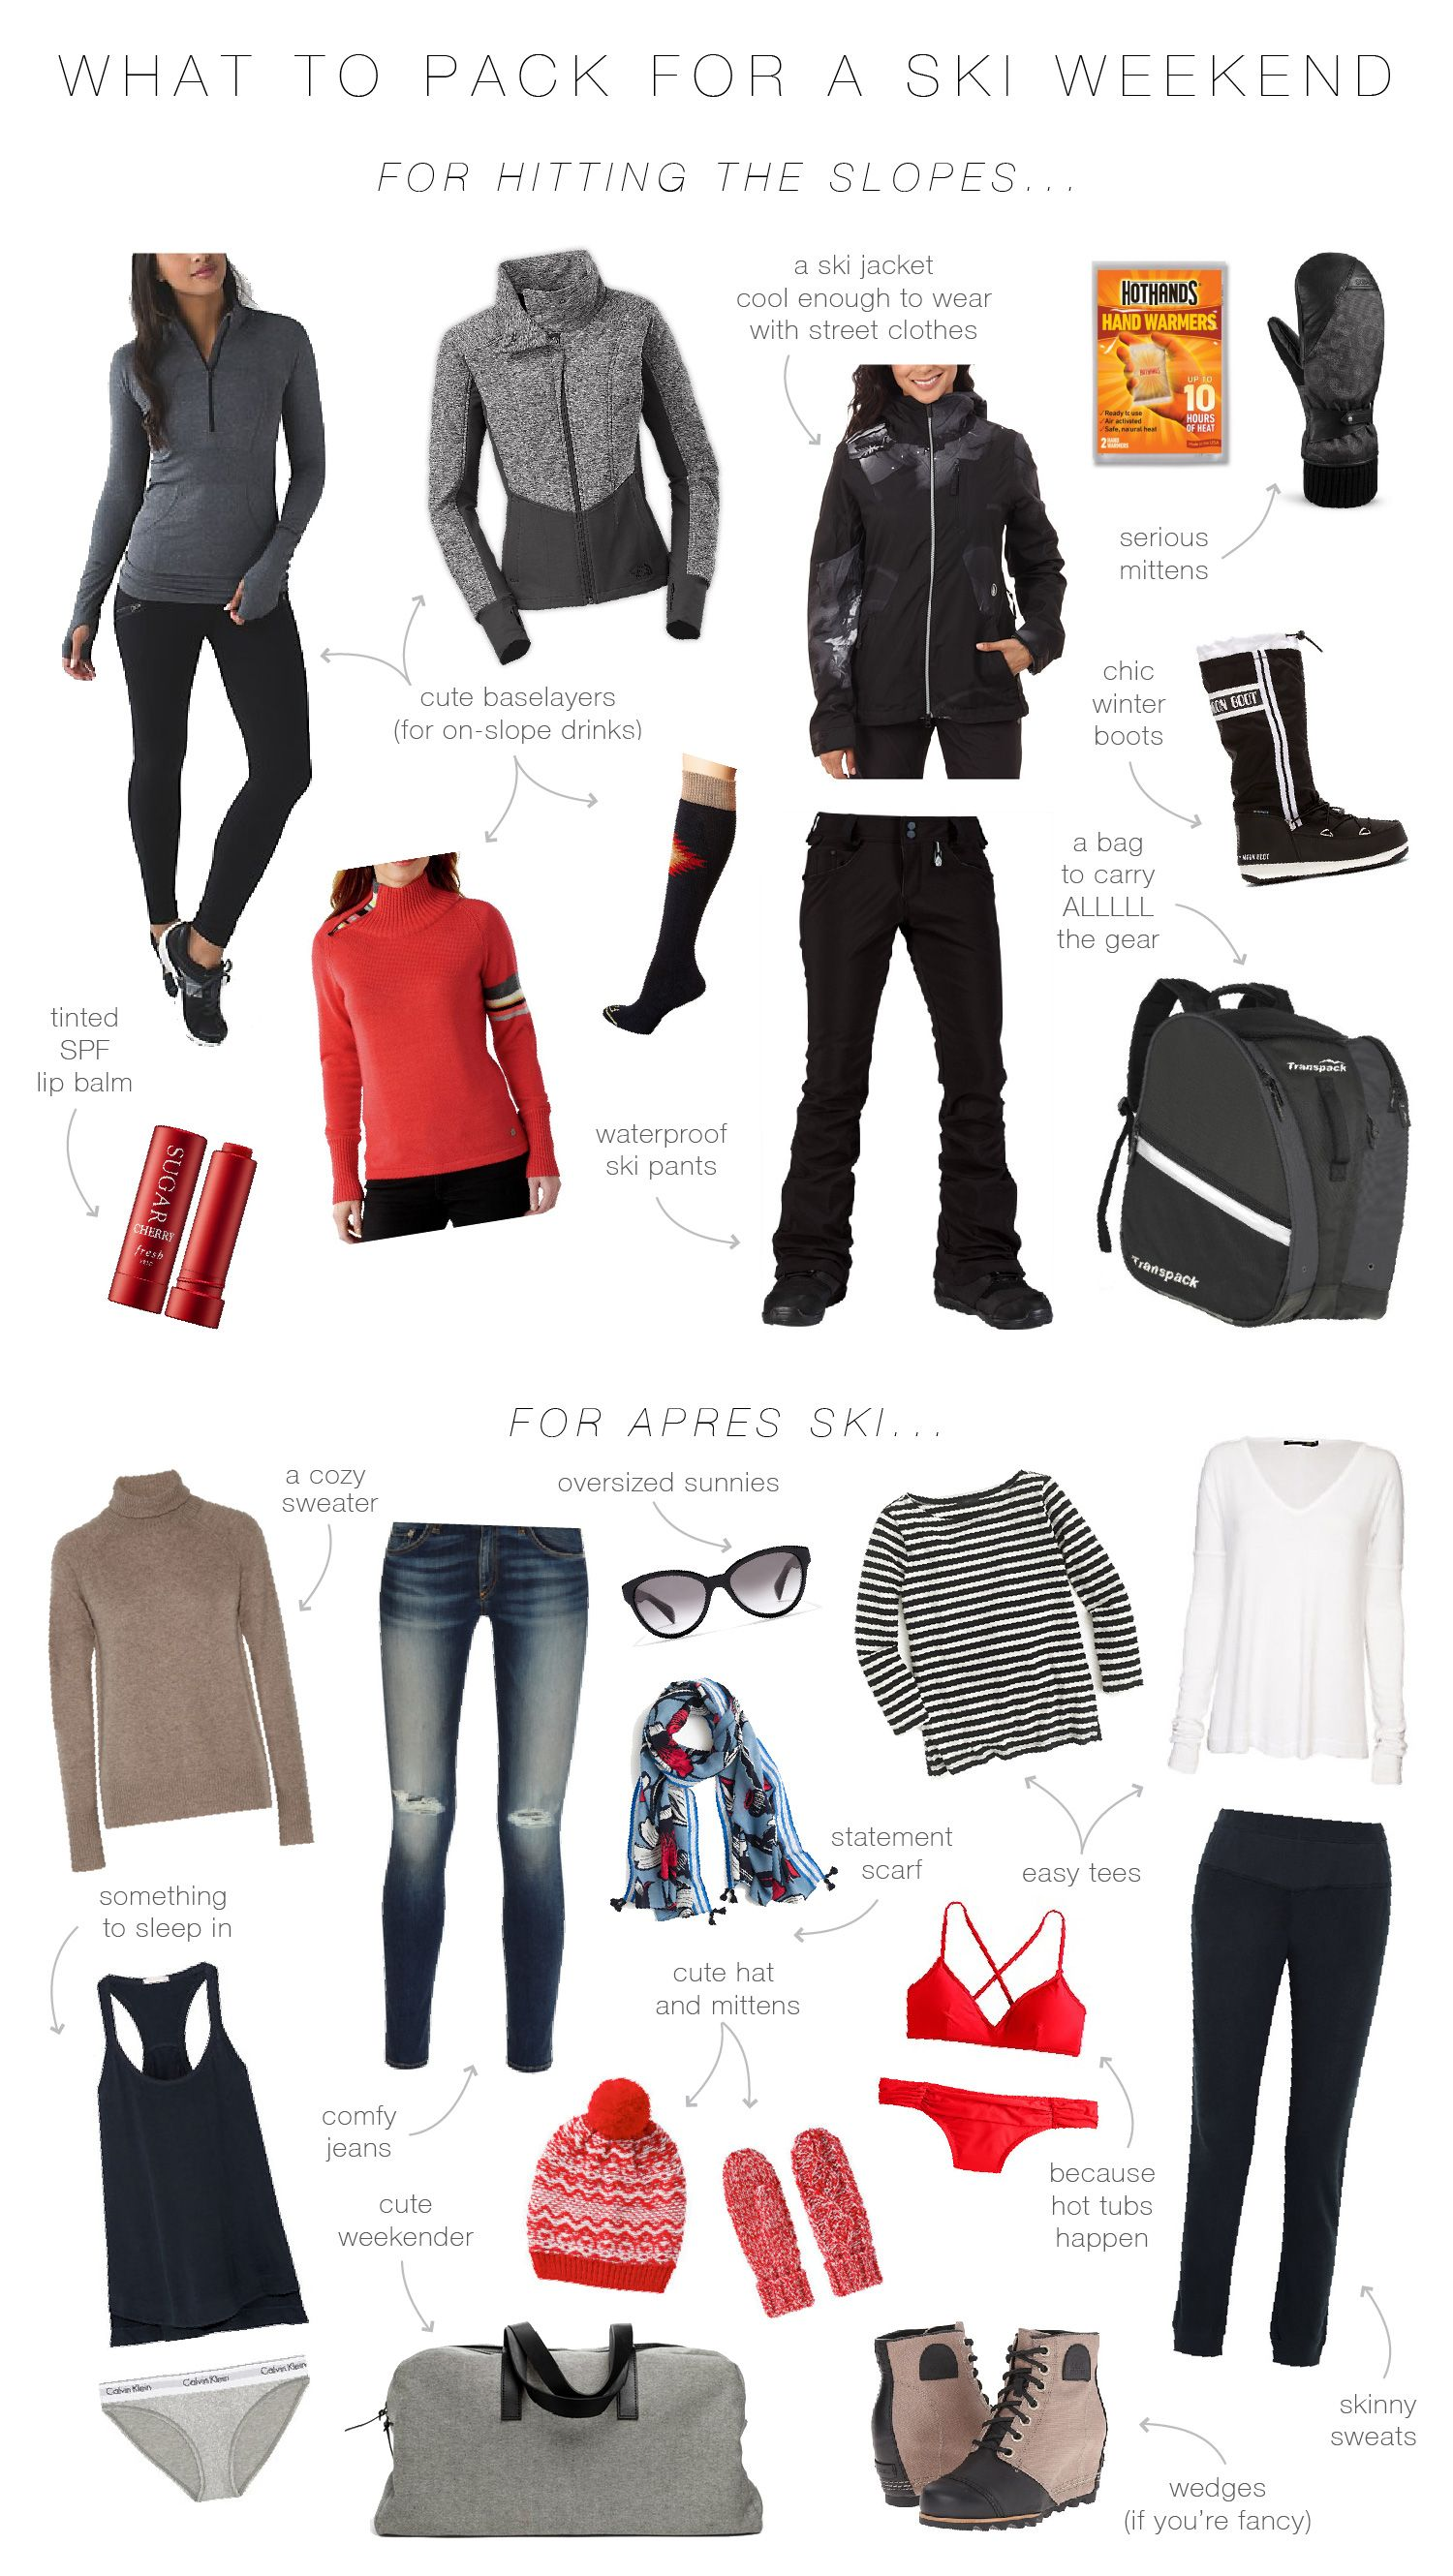 f5d089e95c What To Wear and Pack For a Ski Weekend | Travel Ideas | Ski trip ...